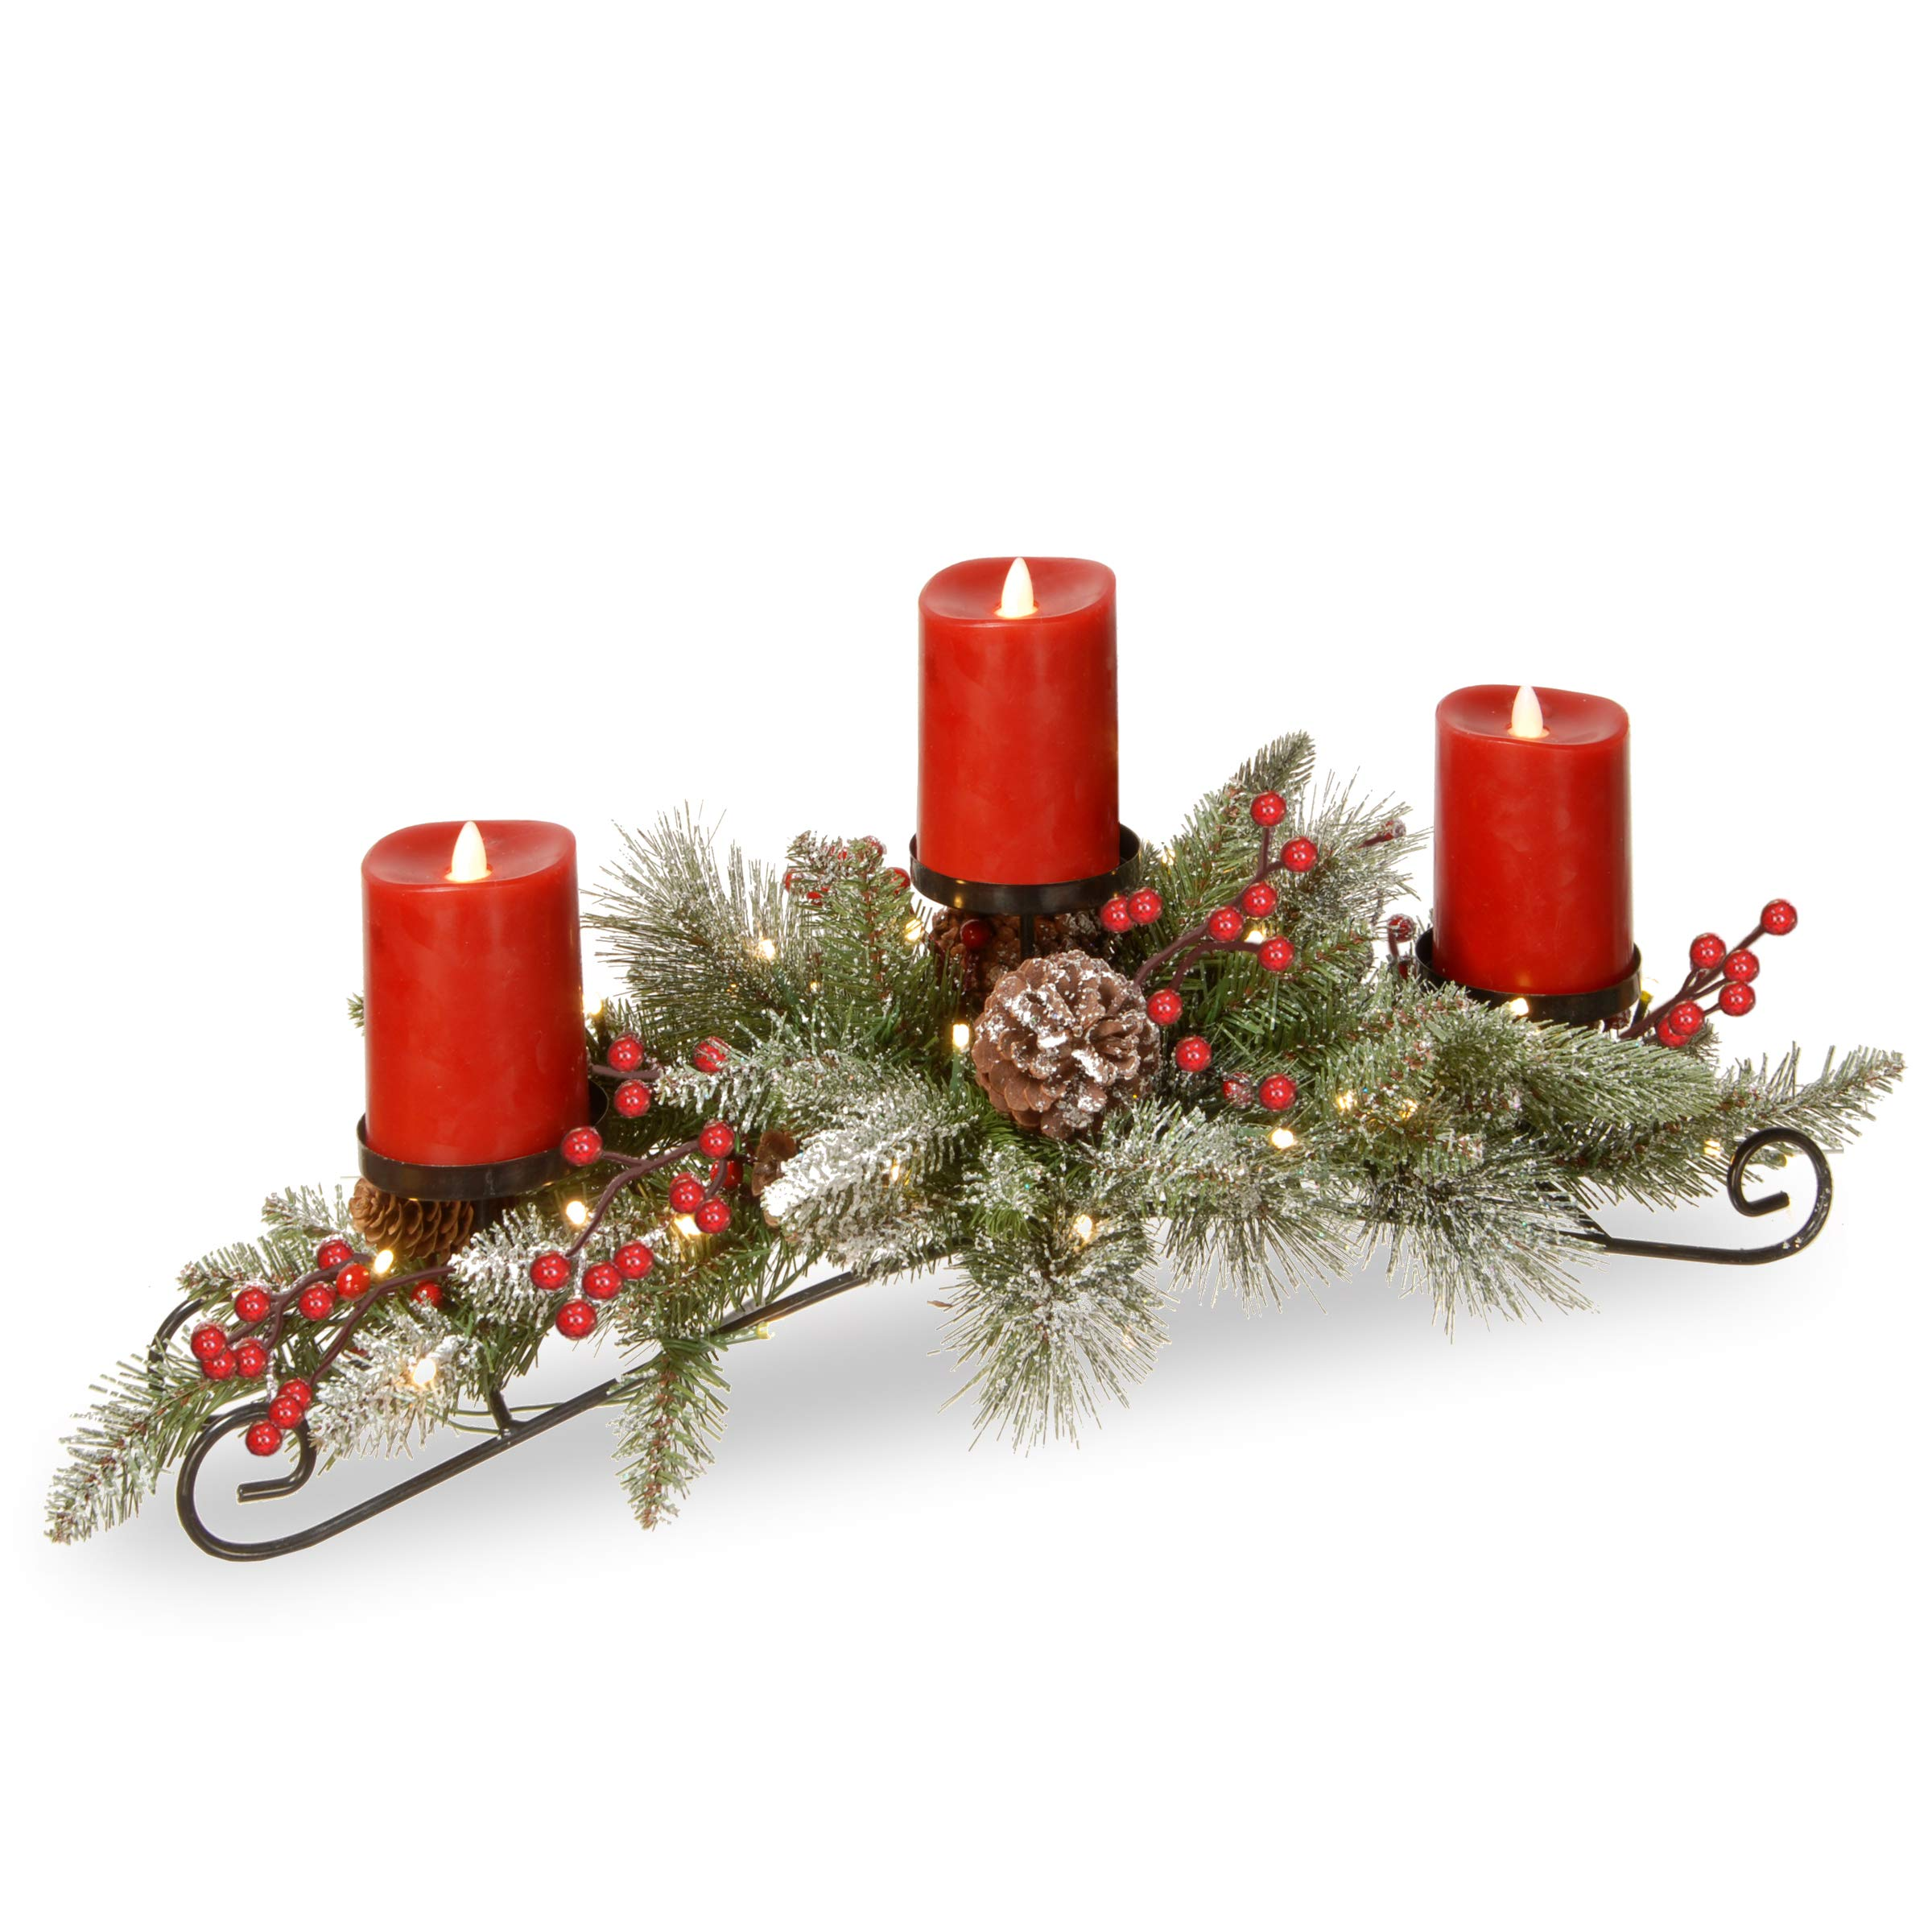 National Tree Feel Real Snowy Bristle Centerpiece with 3 Electronic Candles, Battery Operated Lights, Berries and Cones, 30'', Green